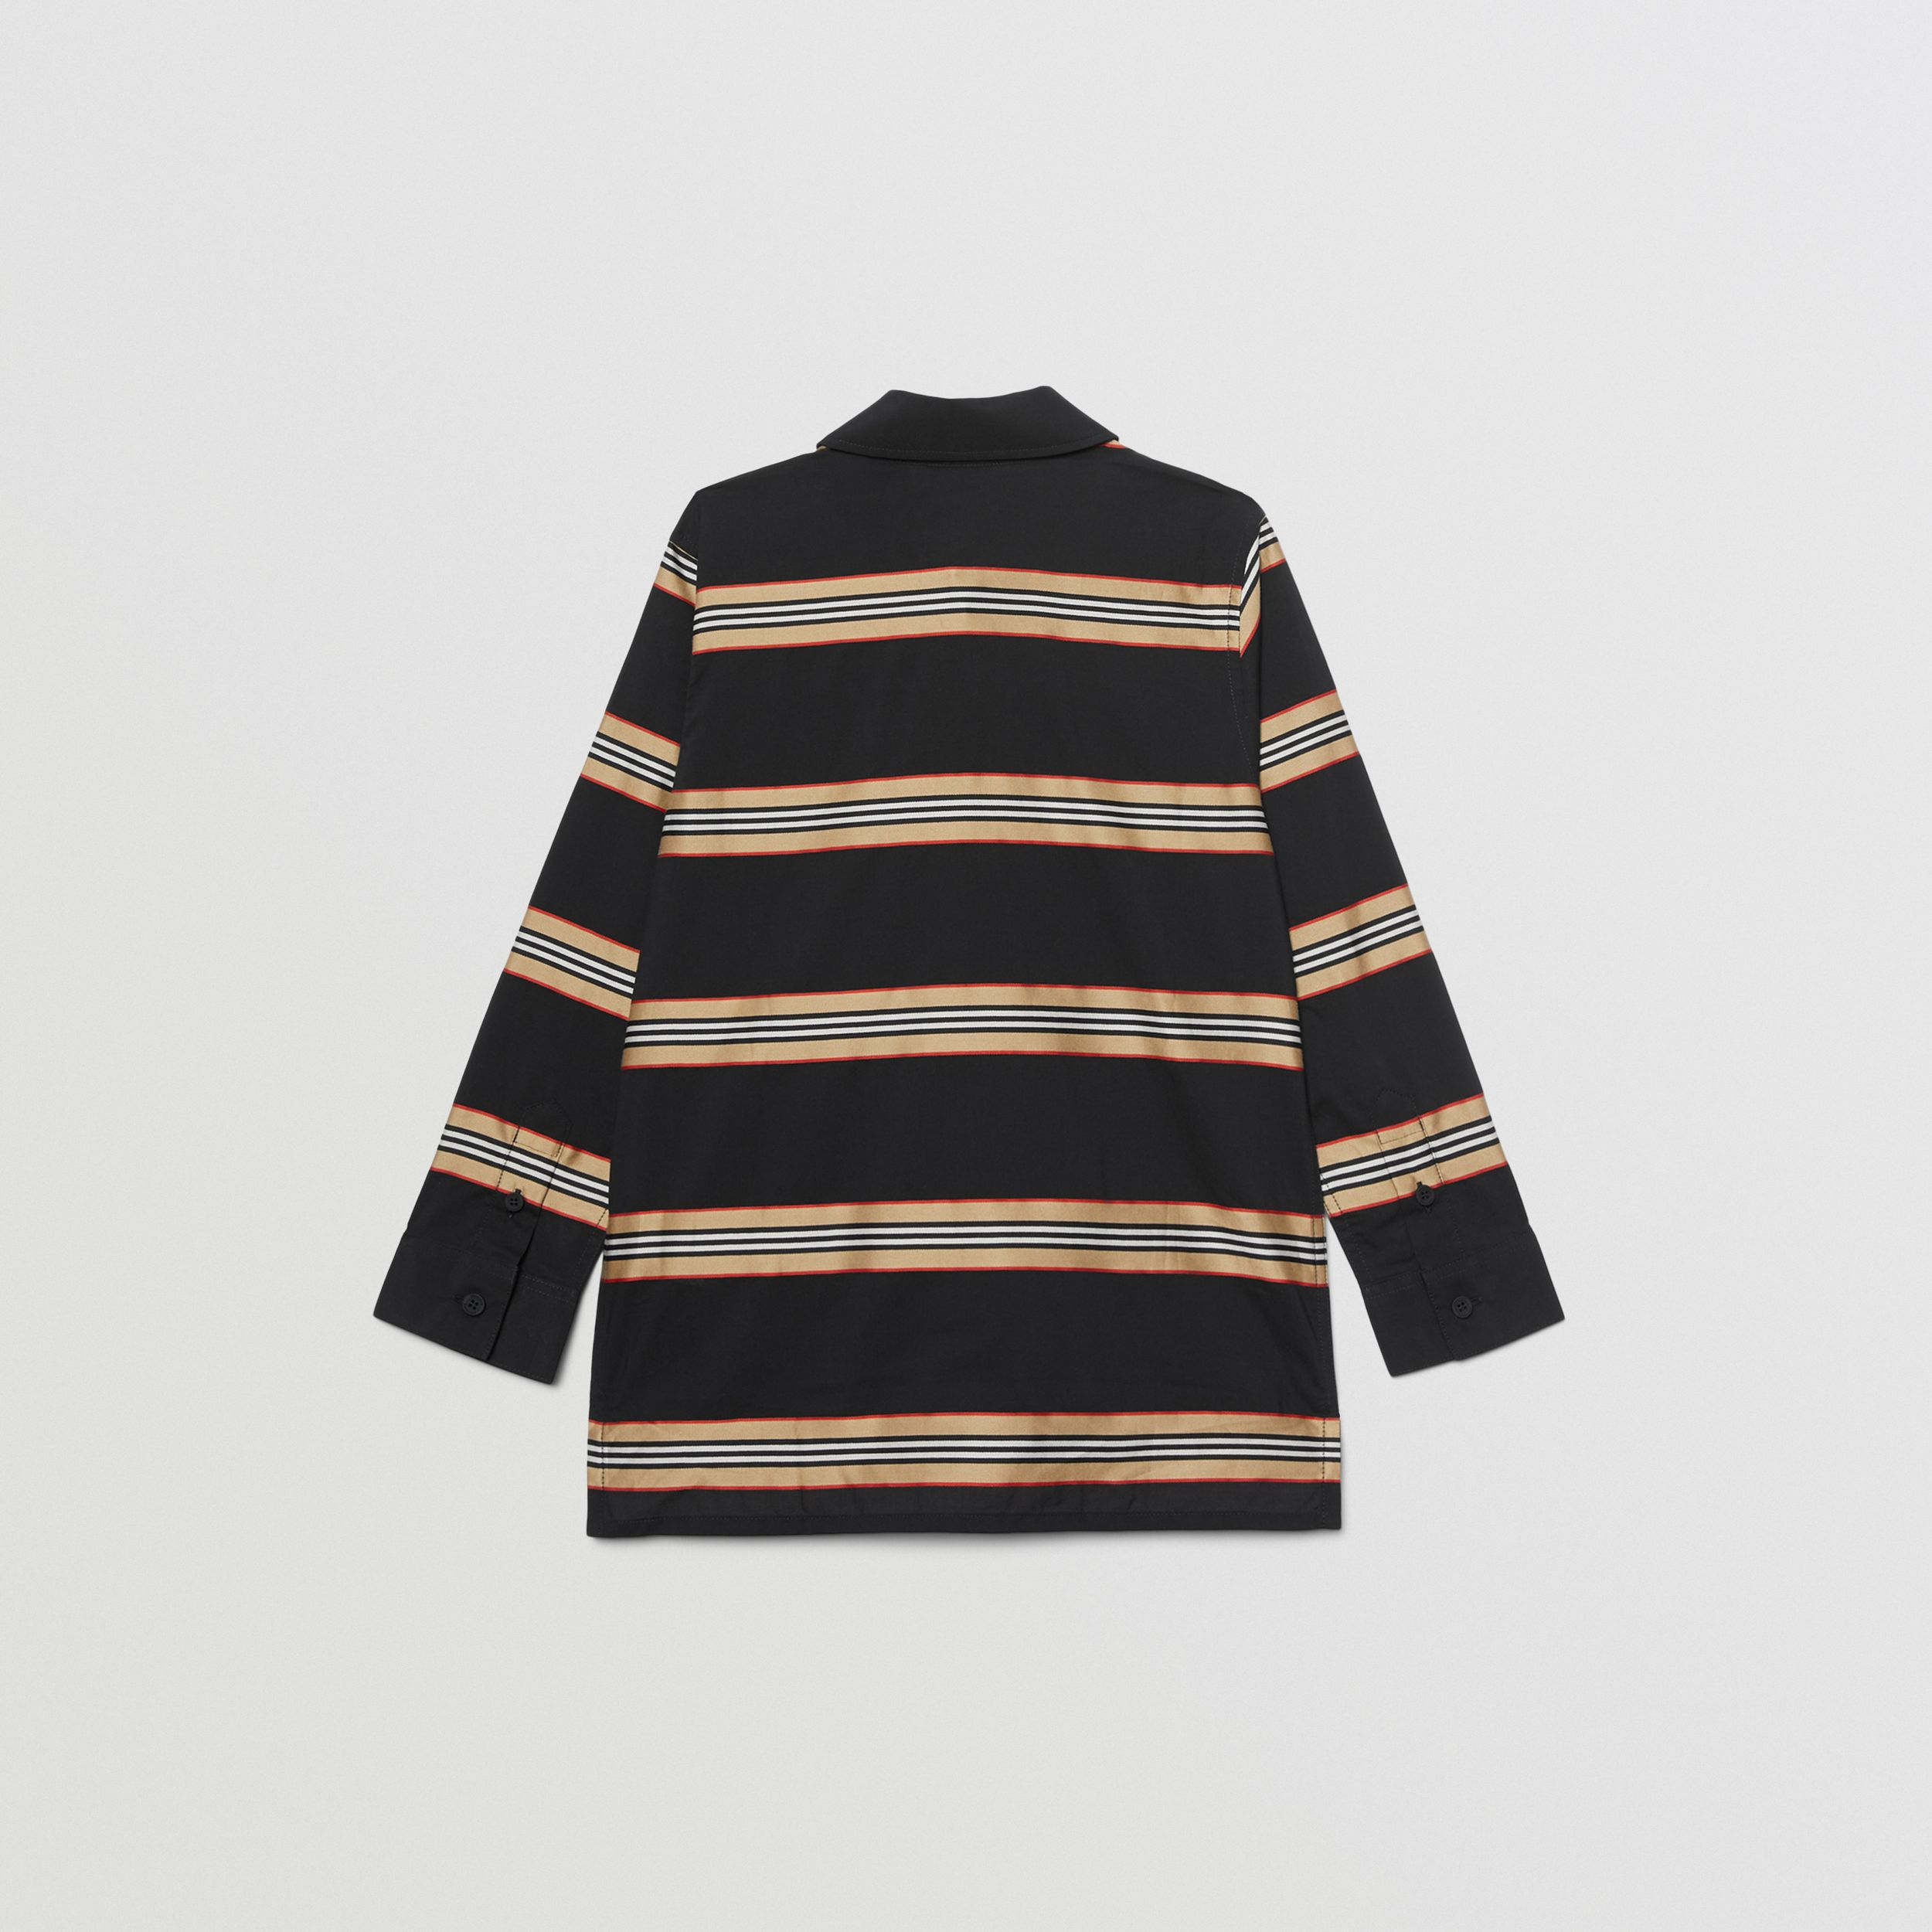 Embroidered Logo Icon Stripe Cotton Shirt in Black | Burberry - 4